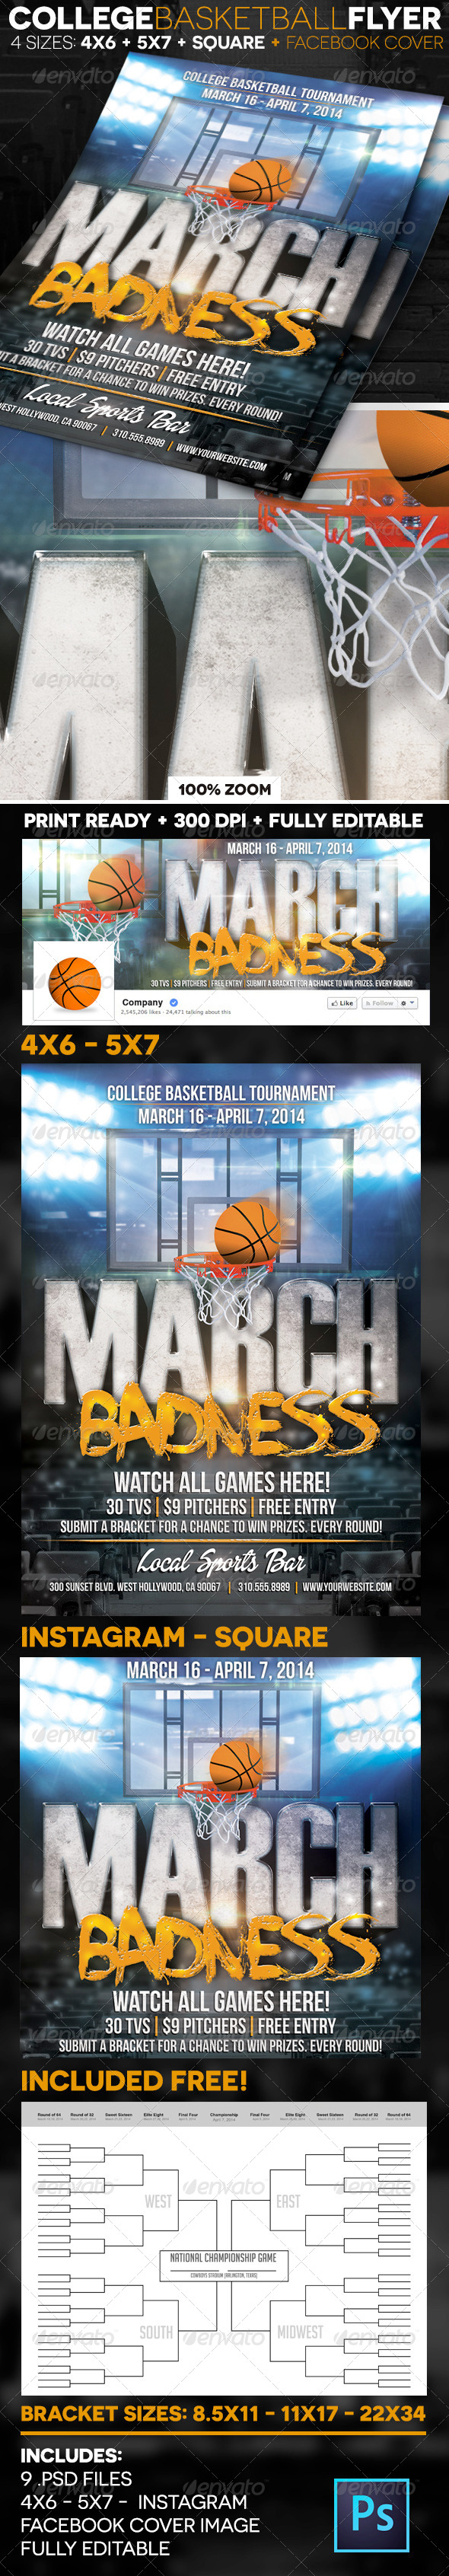 GraphicRiver March Badness College Basketball Flyer 7016371